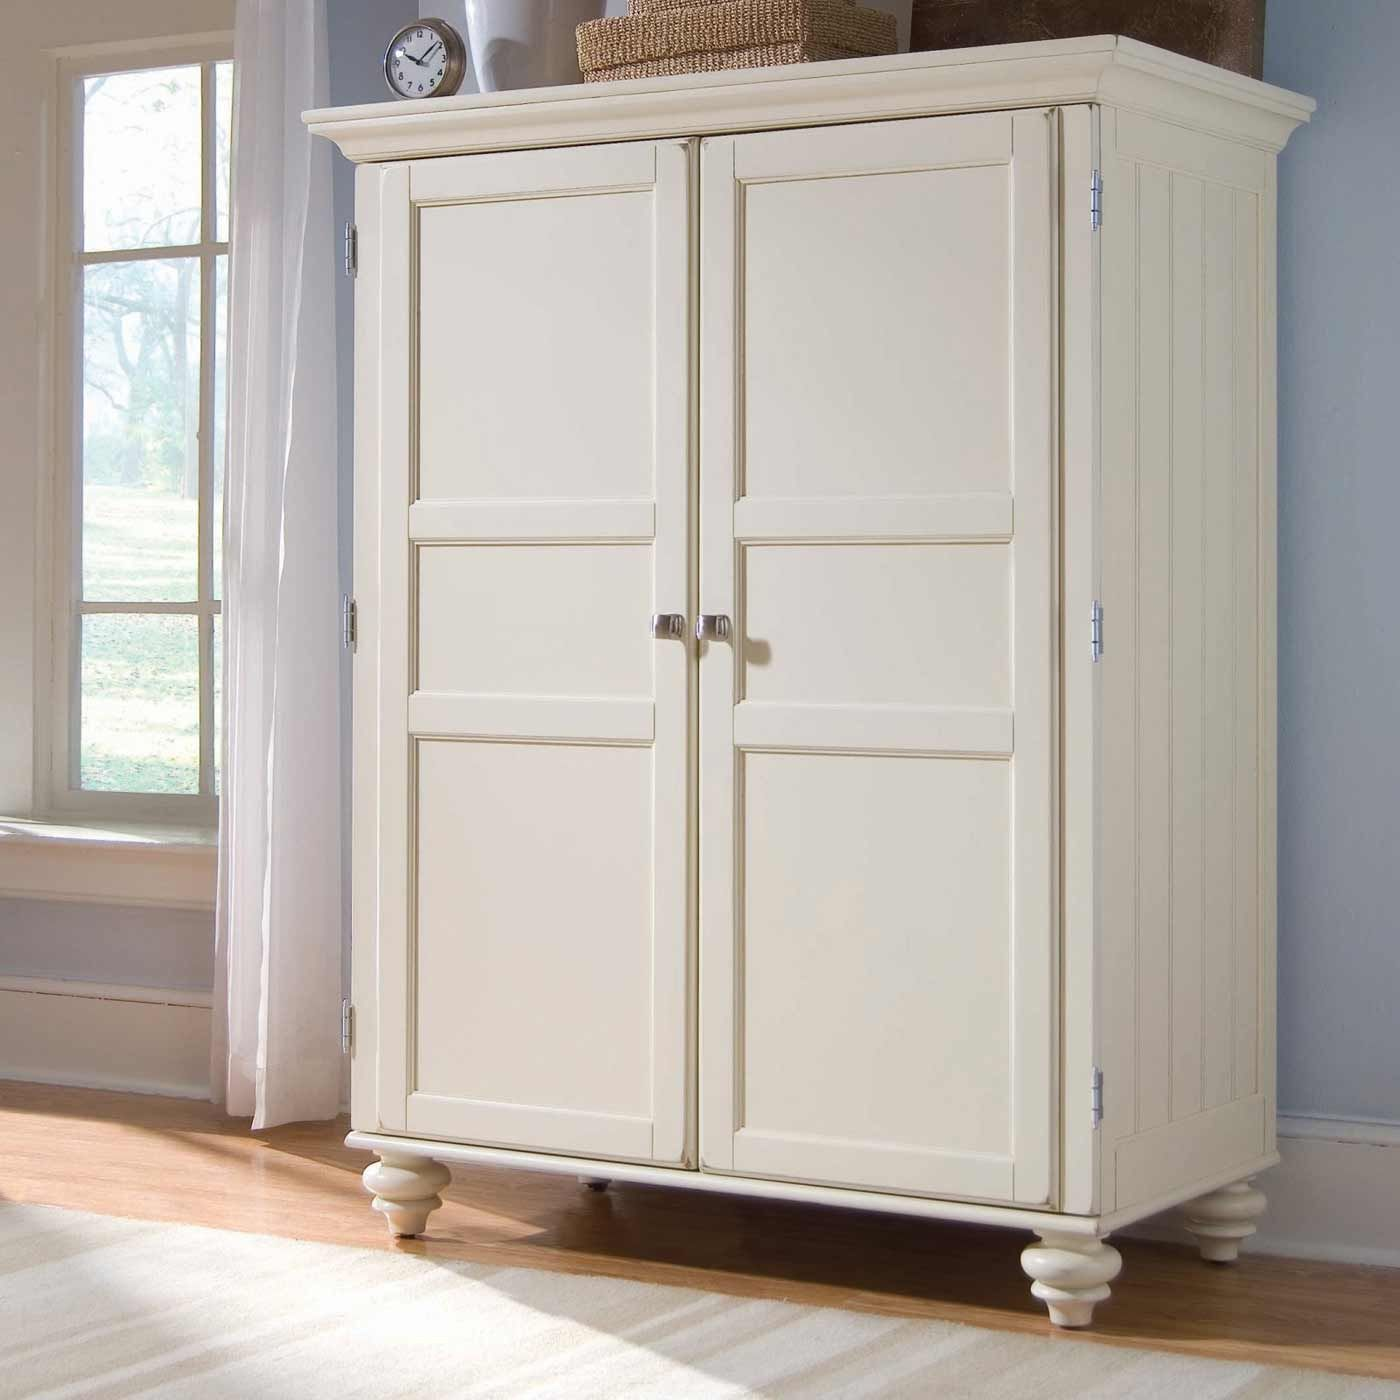 Best White Armoire Morgan Cheap Armoire Desk In Cream White 400 x 300